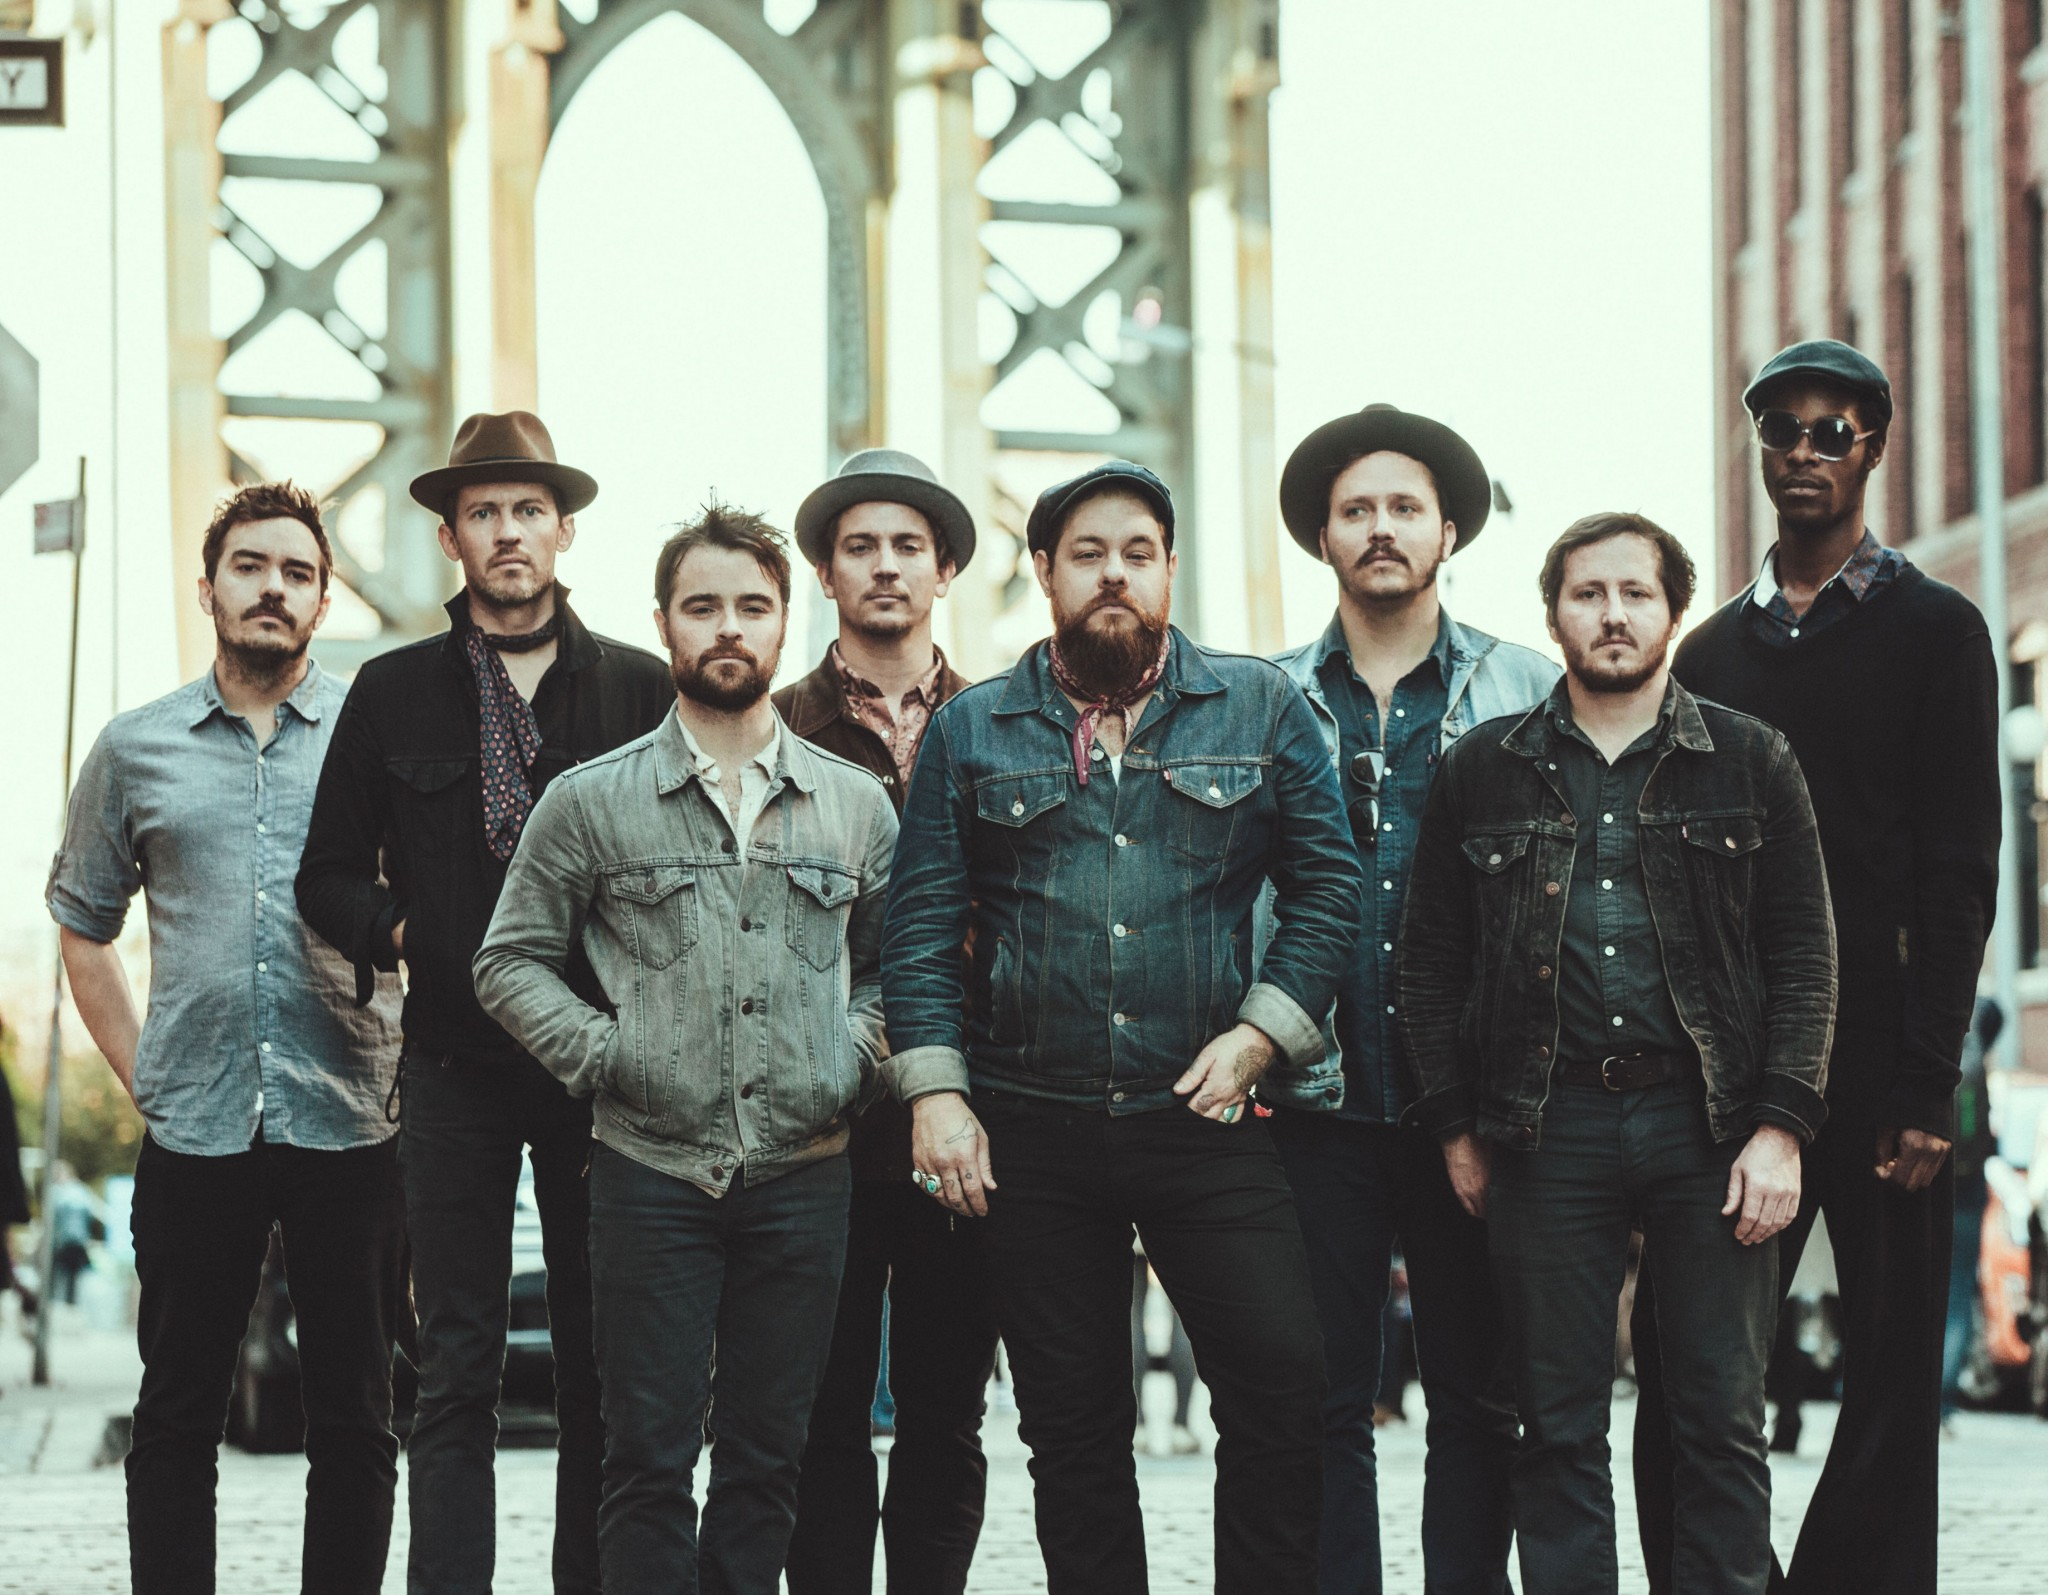 Nathaniel Rateliff And The Night Sweats play Latitude, T In The Park and Citadel festivals